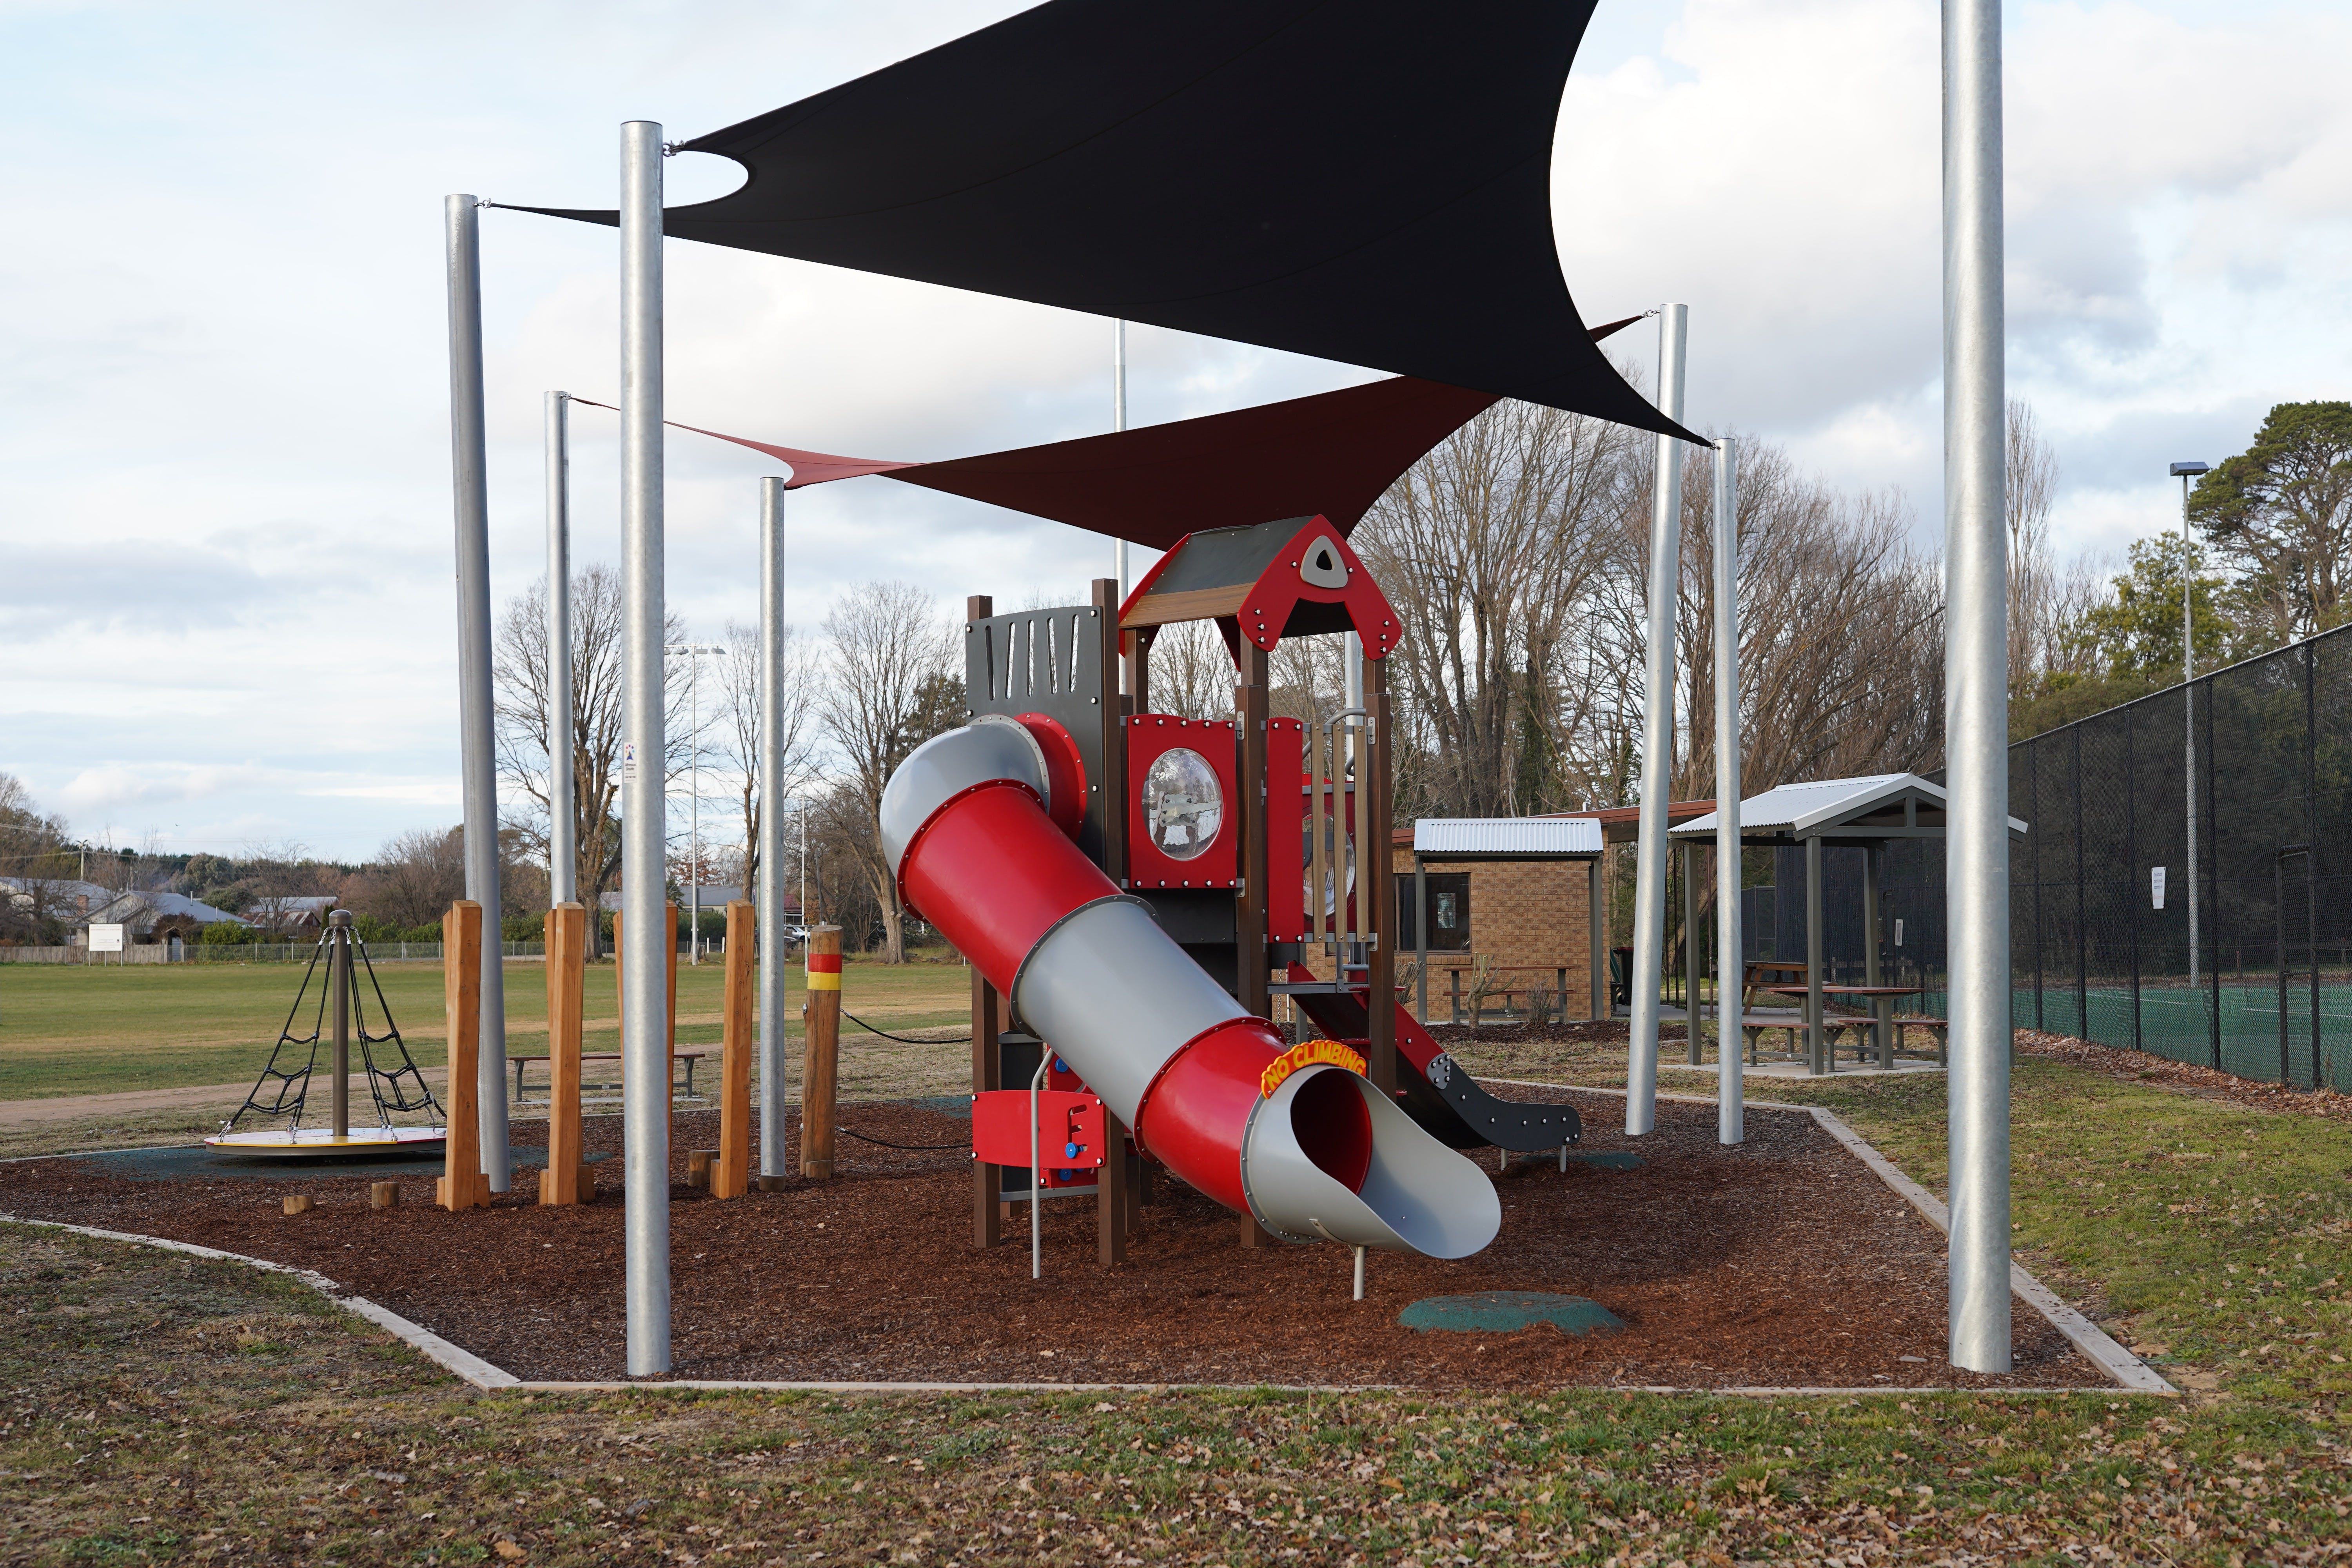 Braidwood Recreation Grounds and Playground - Accommodation Find